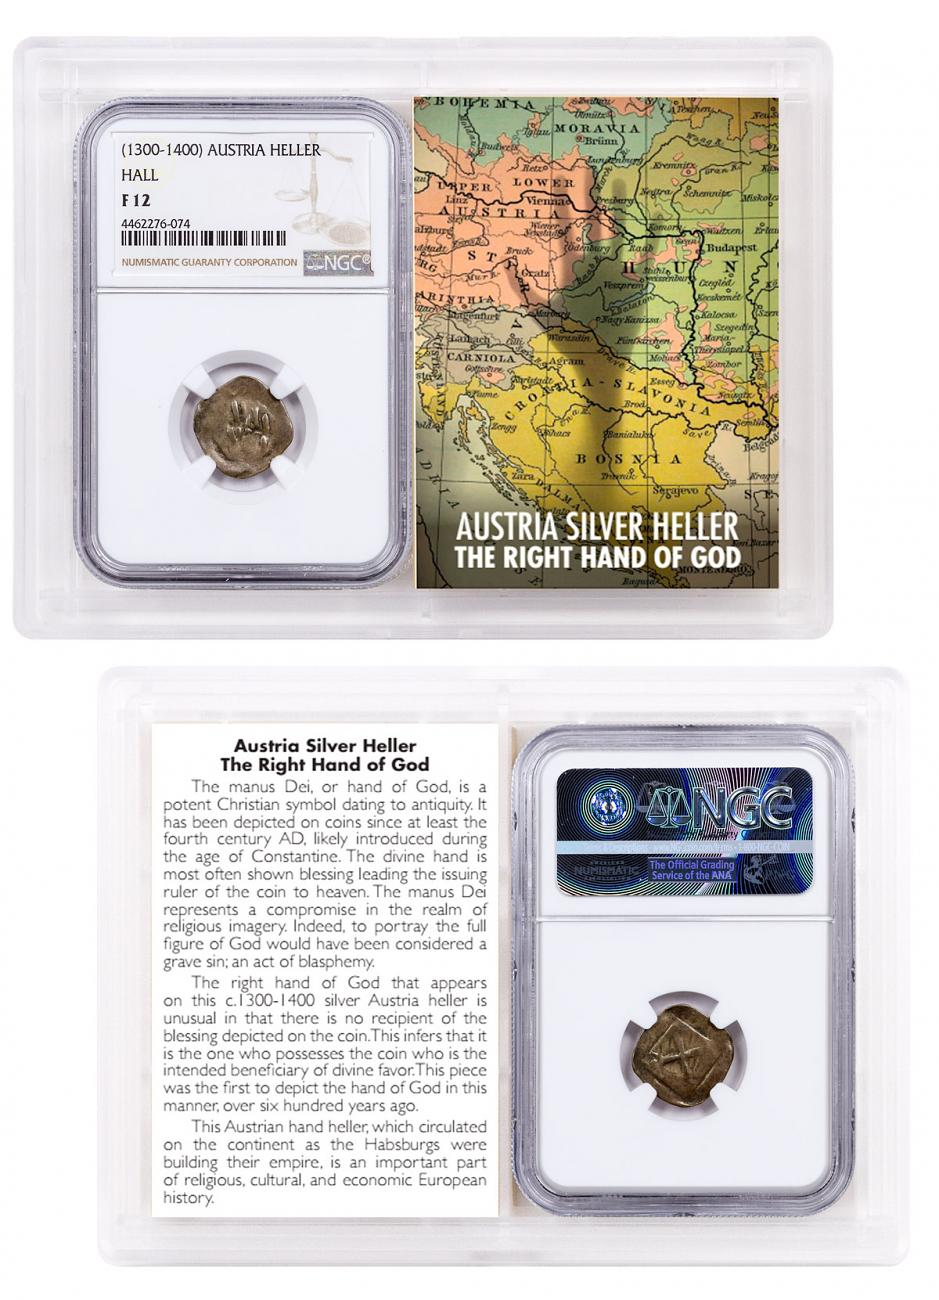 1300-1400 Austria Hall Silver Hand Heller NGC F12 Story Vault